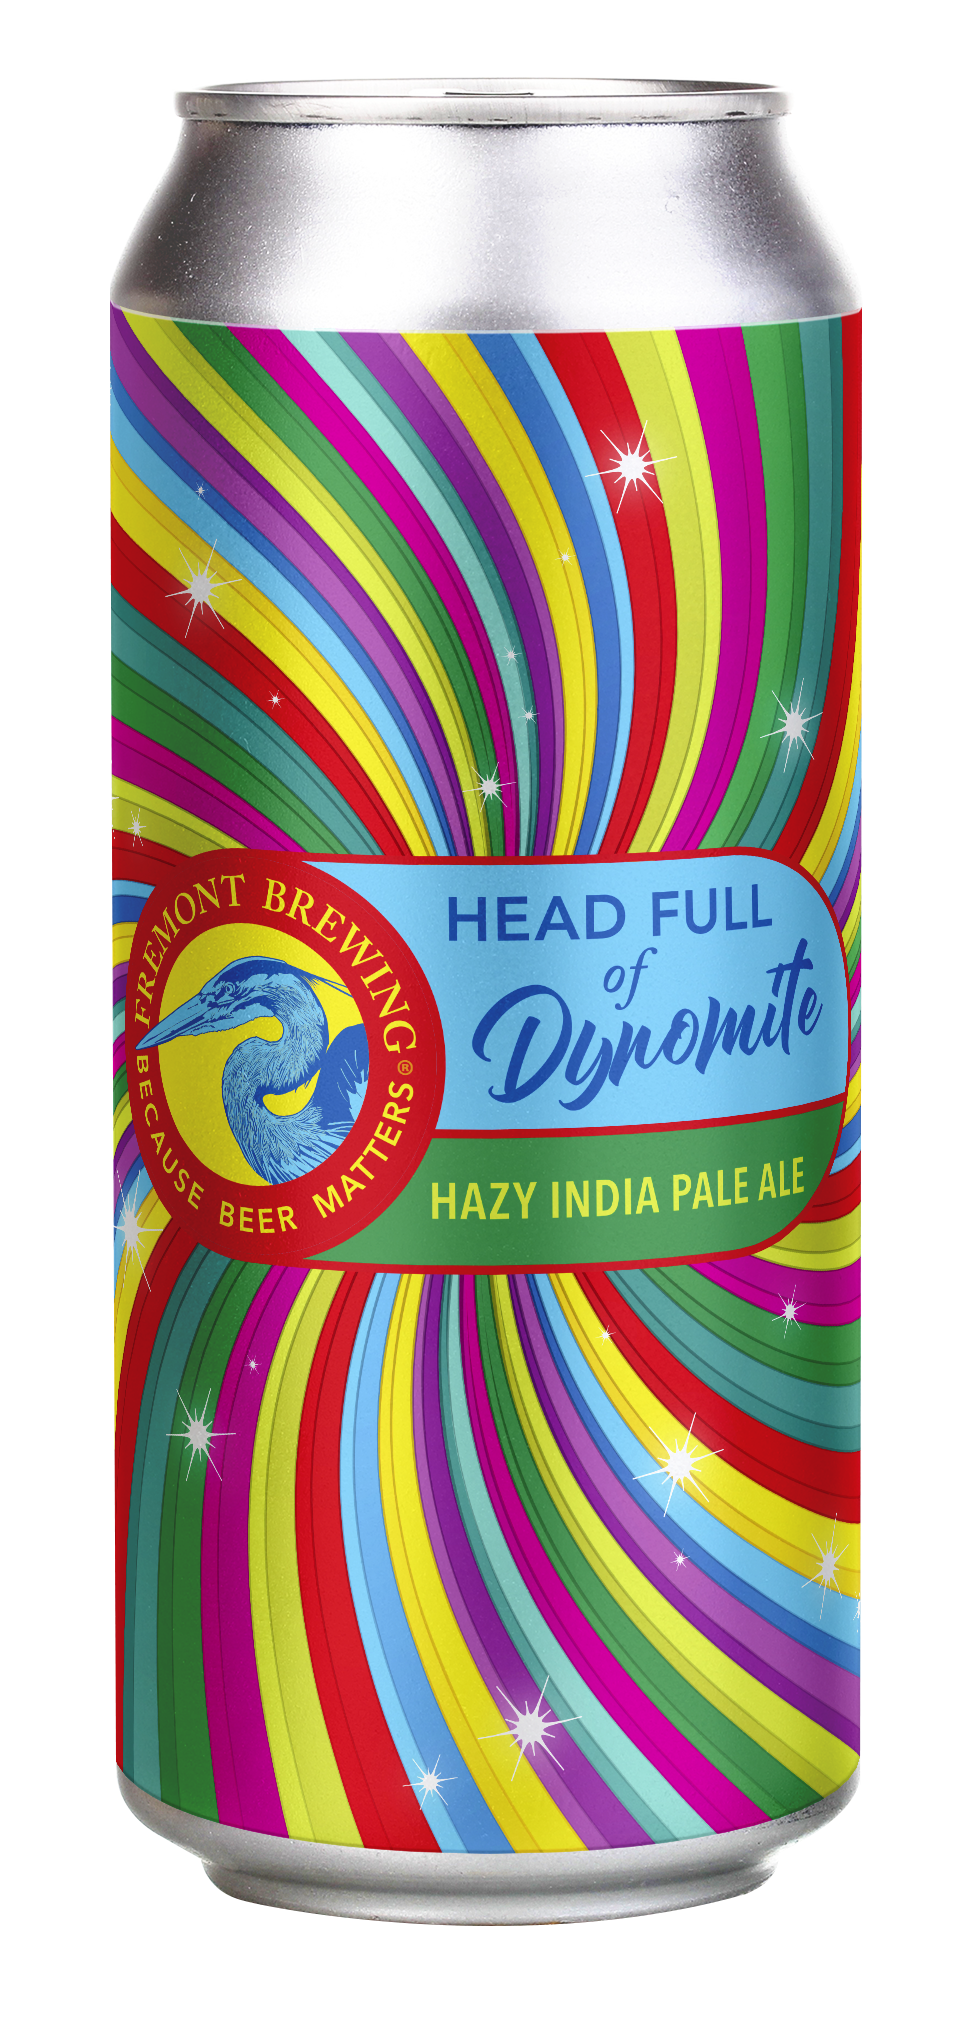 Head Full of Dynomite v.7